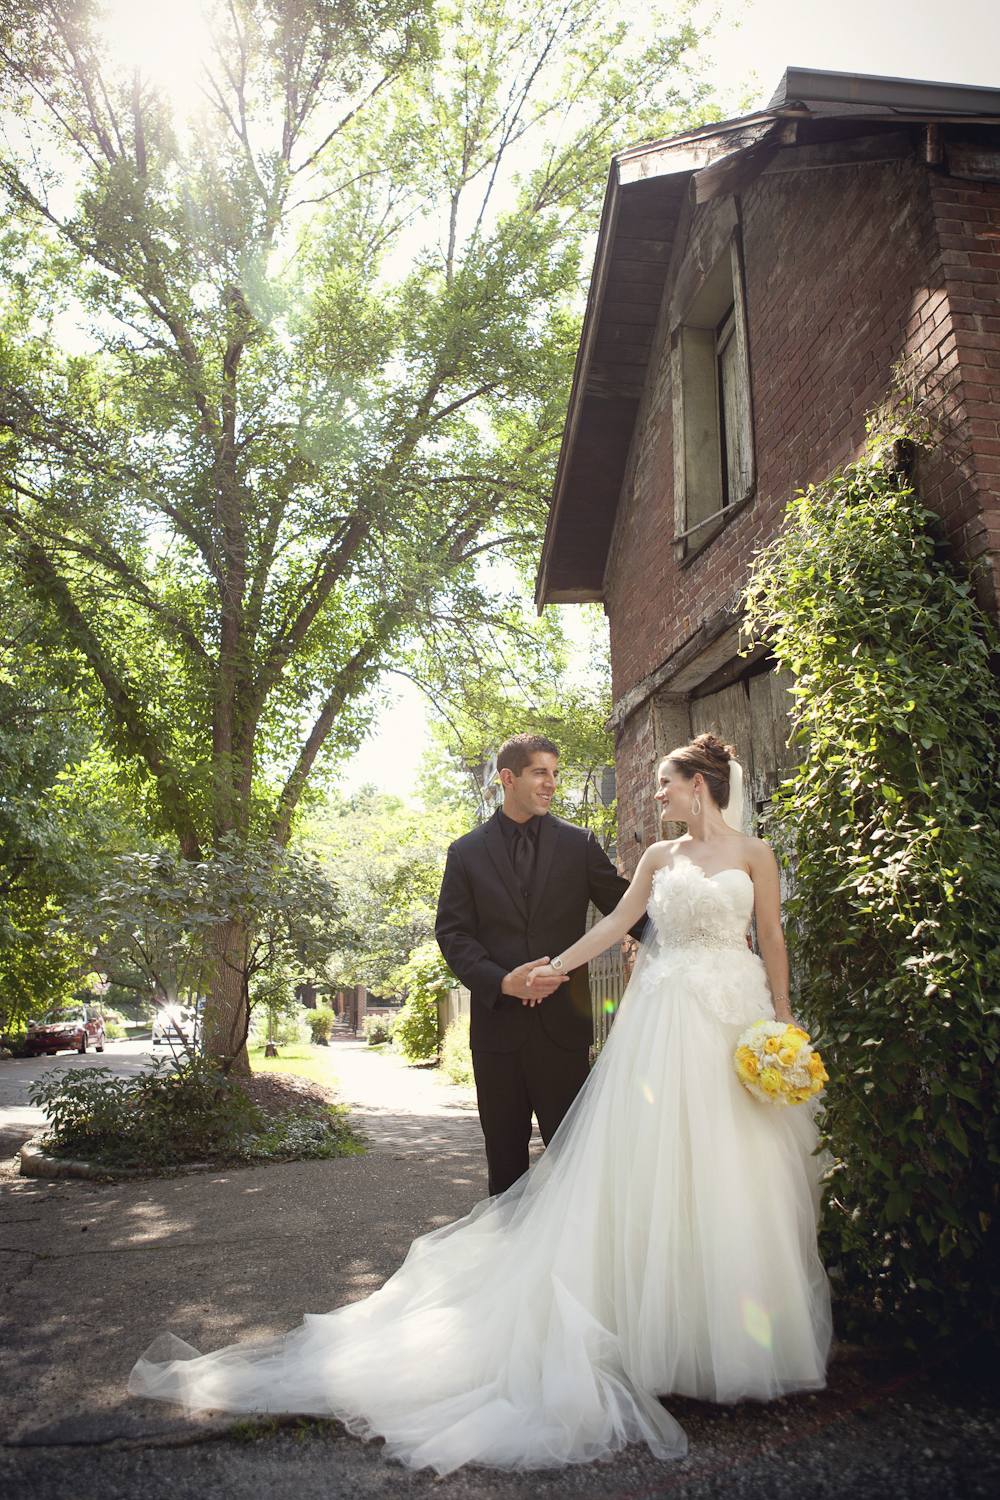 Indianapolis-Indiana-Wedding-Photographer-Crowes-Eye-Photography-Lockerbie-Bride-and-Groom.jpg